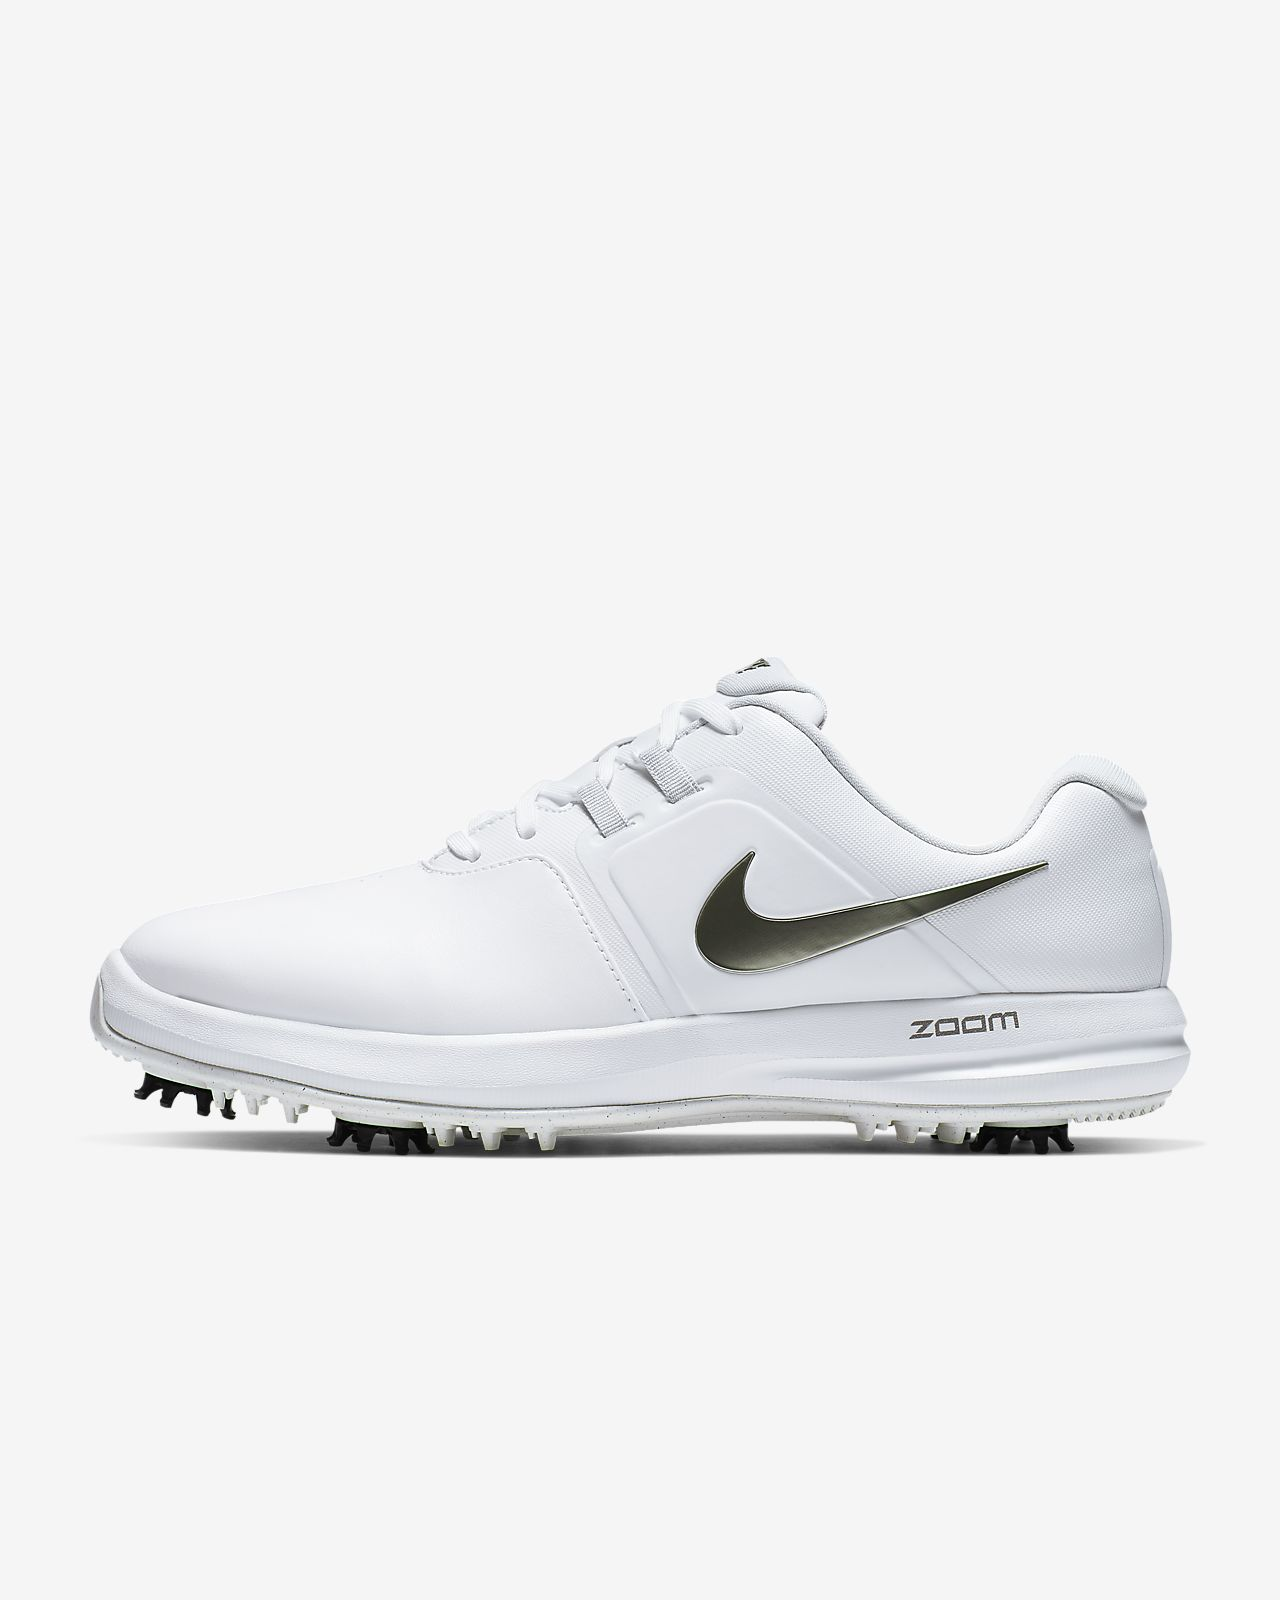 re2997 nike lunar fire herre golfsko str. 42